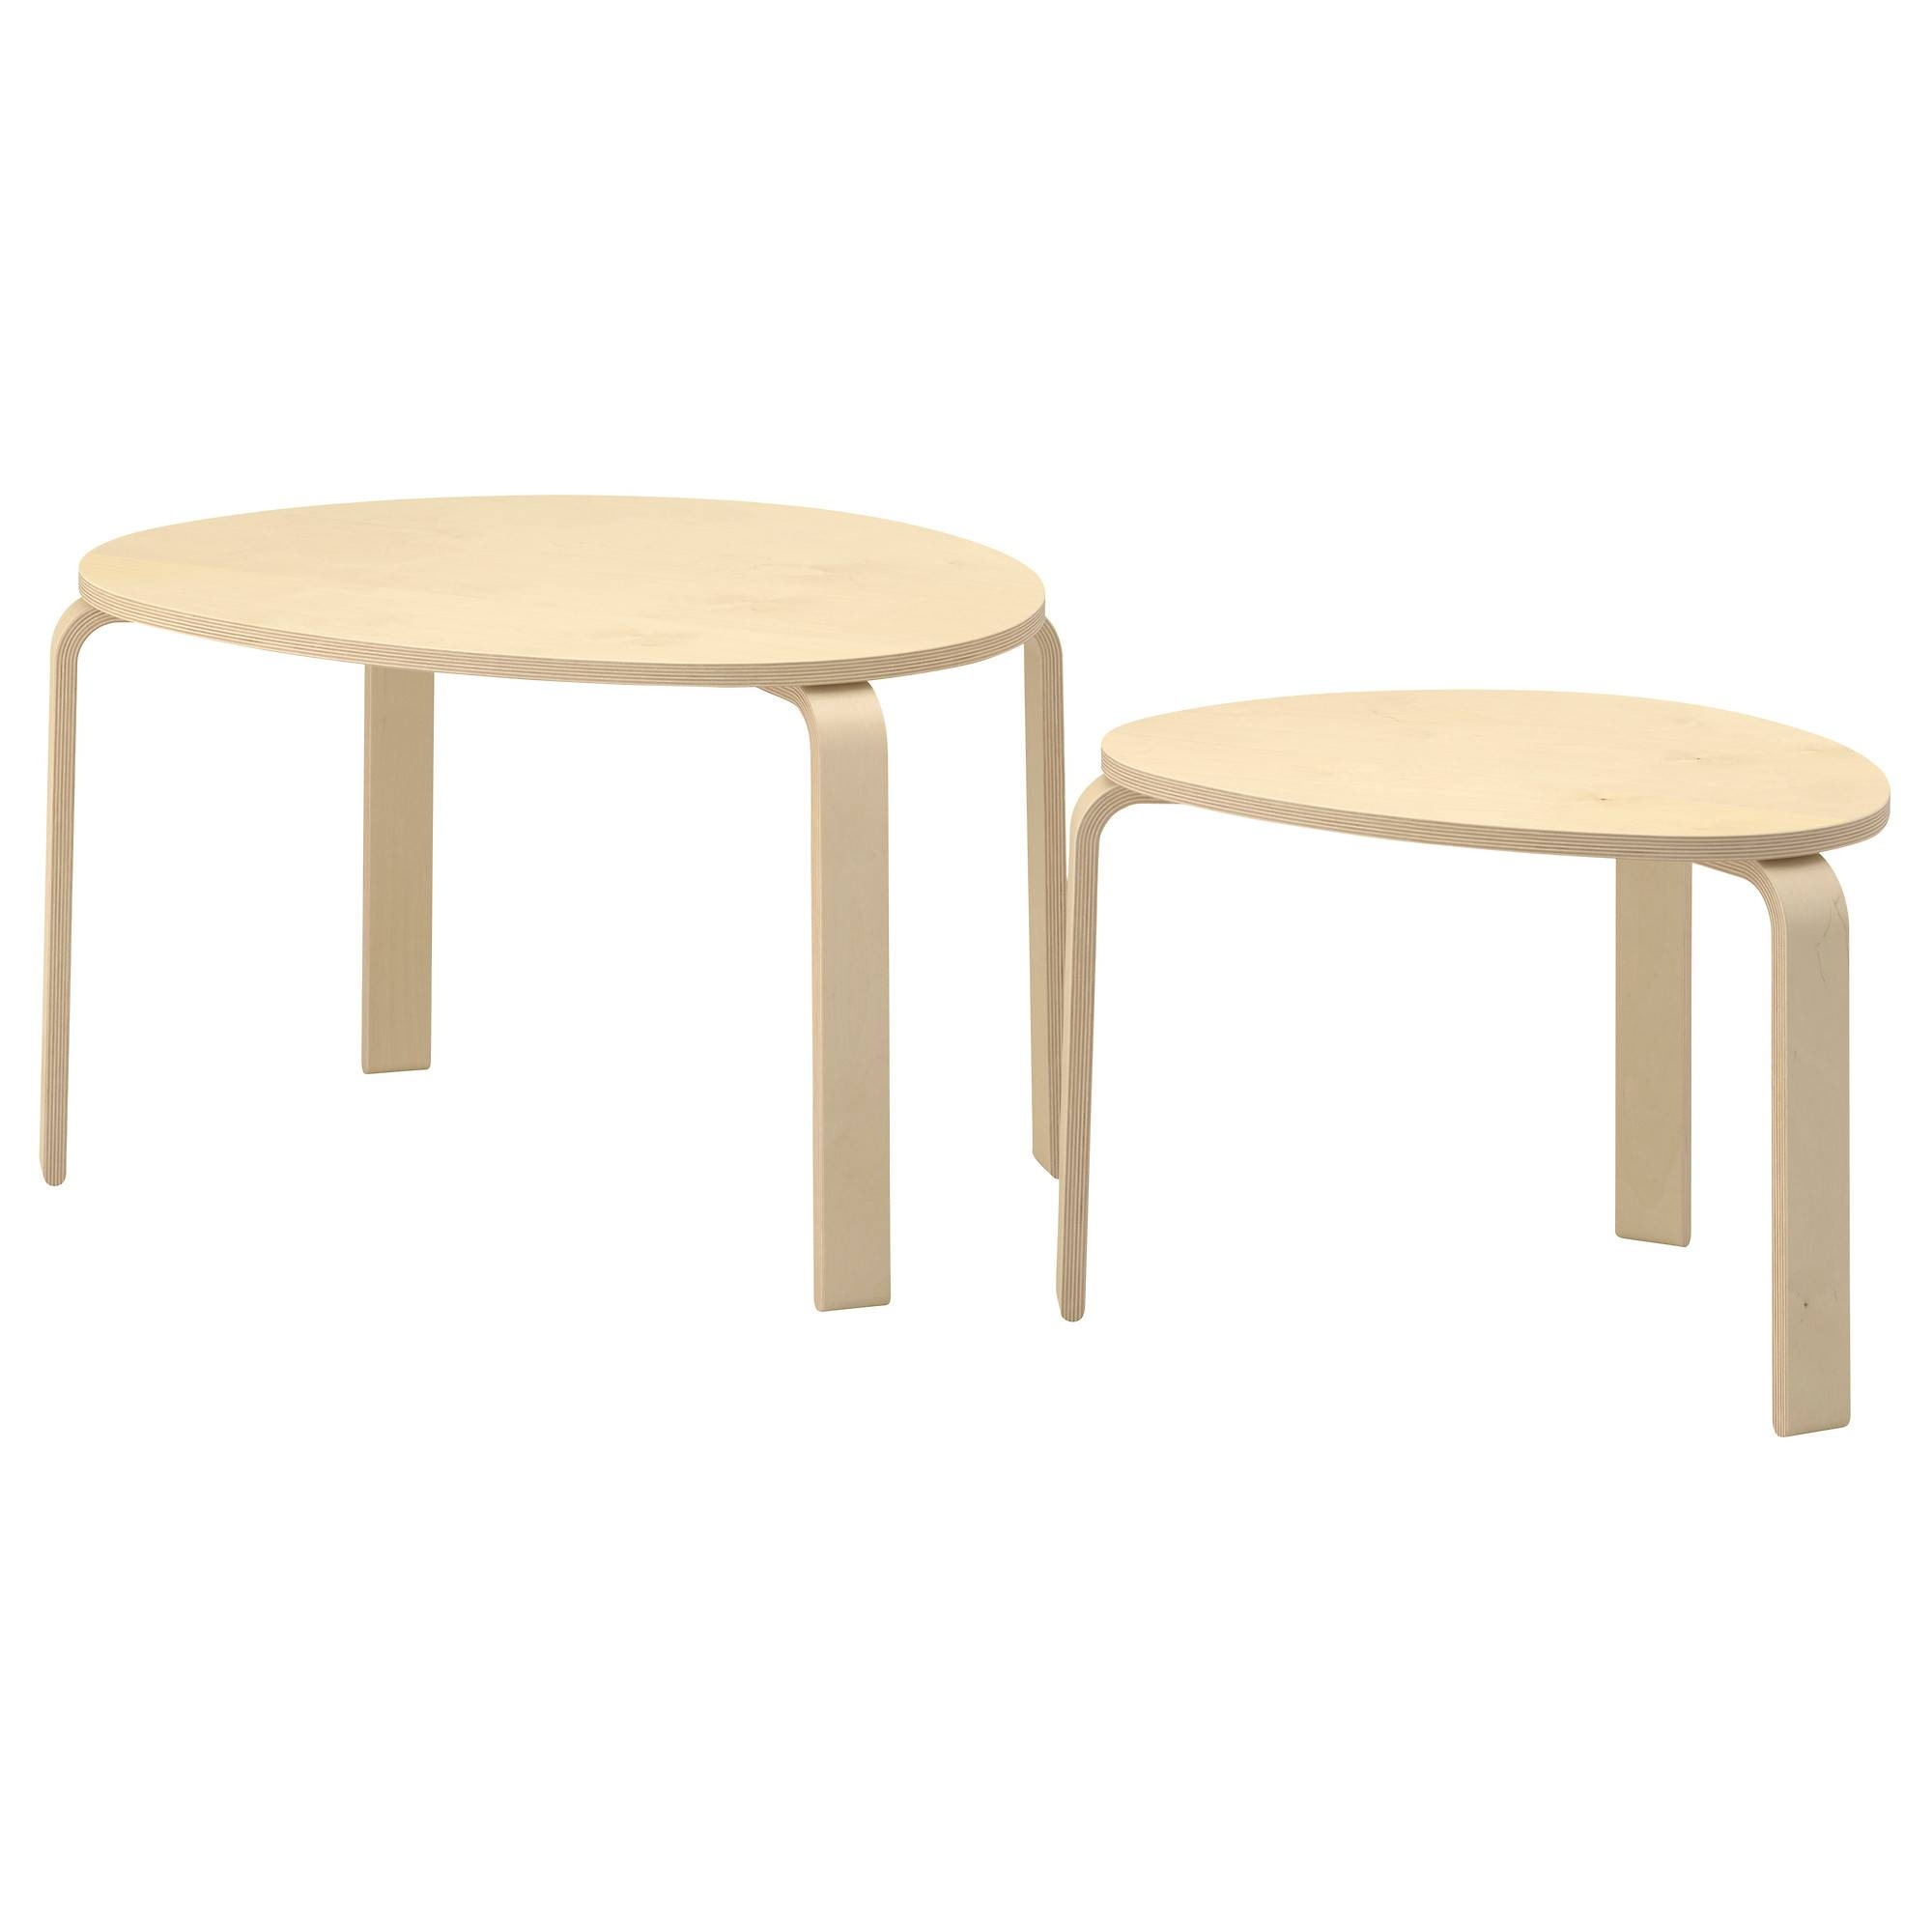 Svalsta Nesting Tables, Set Of 2 - Birch Veneer - Ikea throughout Birch Coffee Tables (Image 23 of 30)